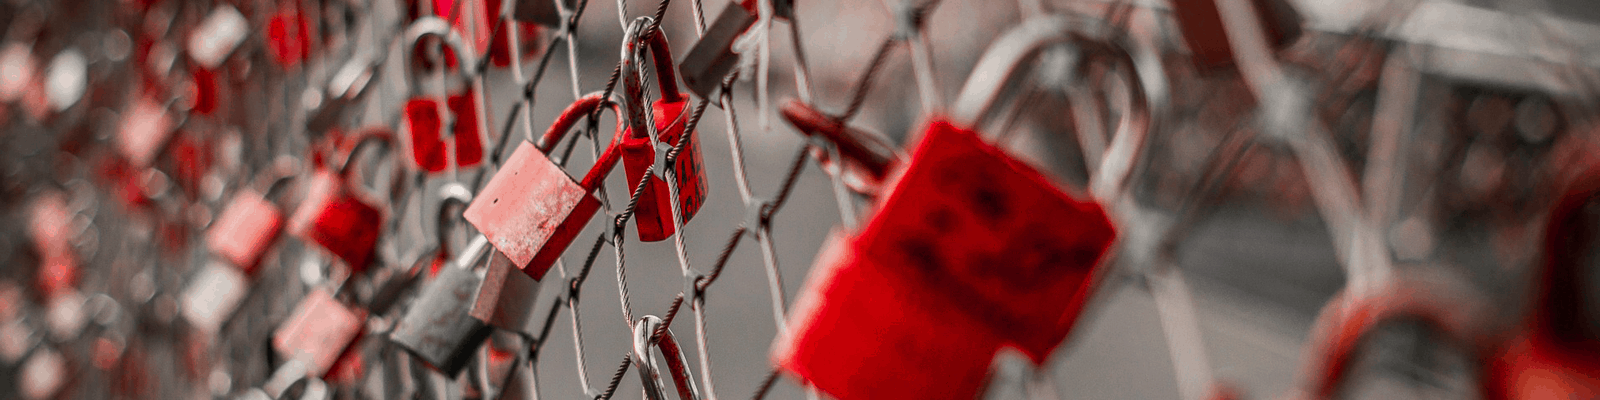 Picture of locks on a fence